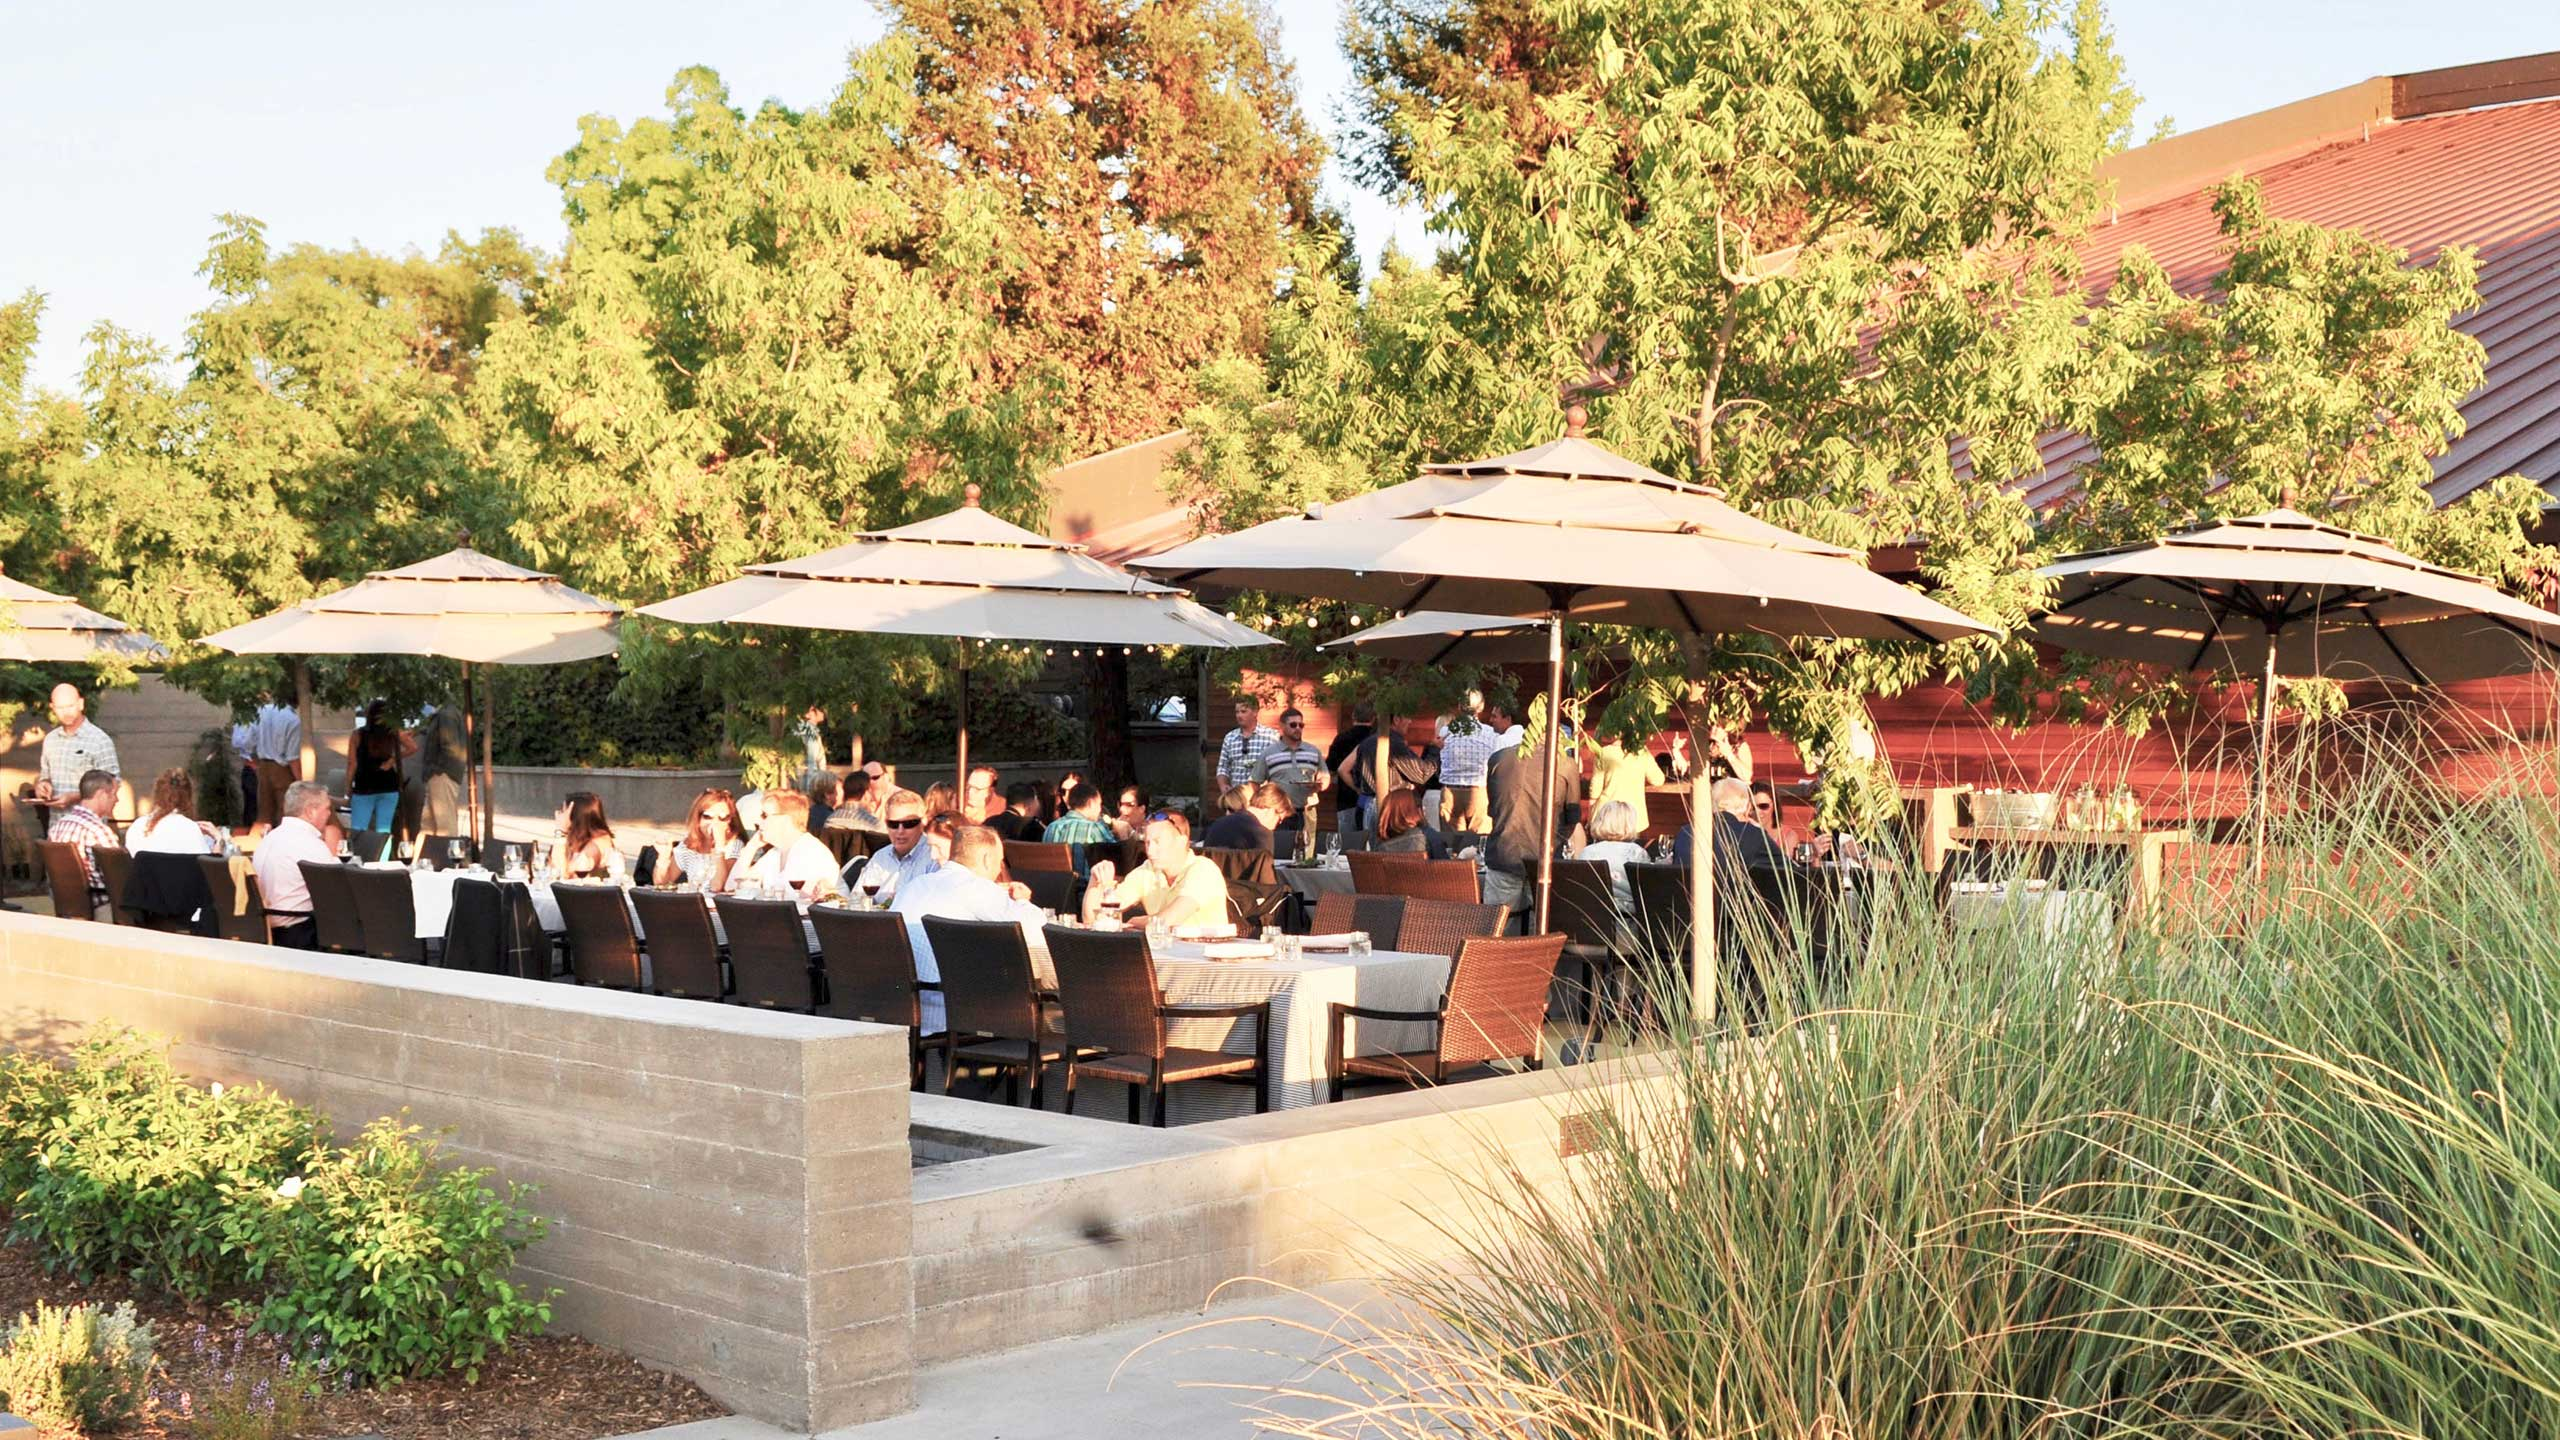 Winery-Architecture-Healdsburg-outdoor-seating